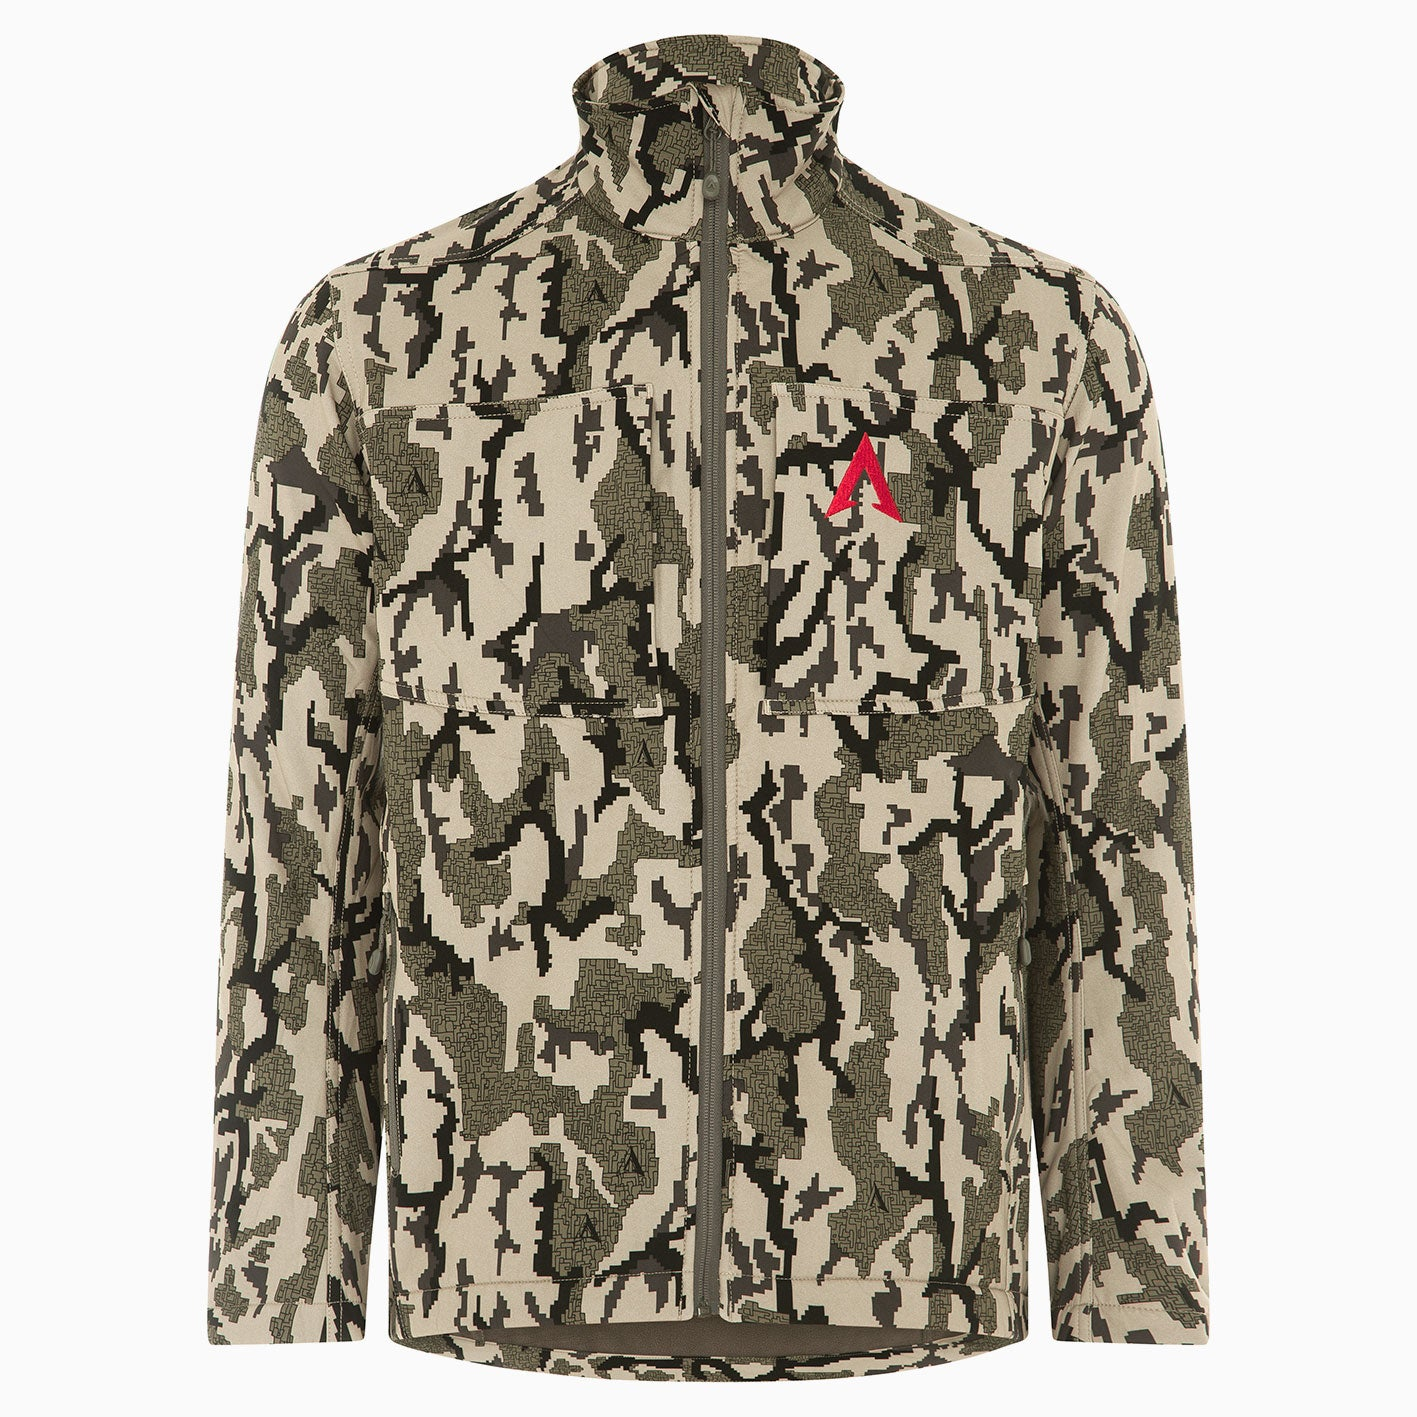 Men's Hunting Jacket - Peak Season Jacket